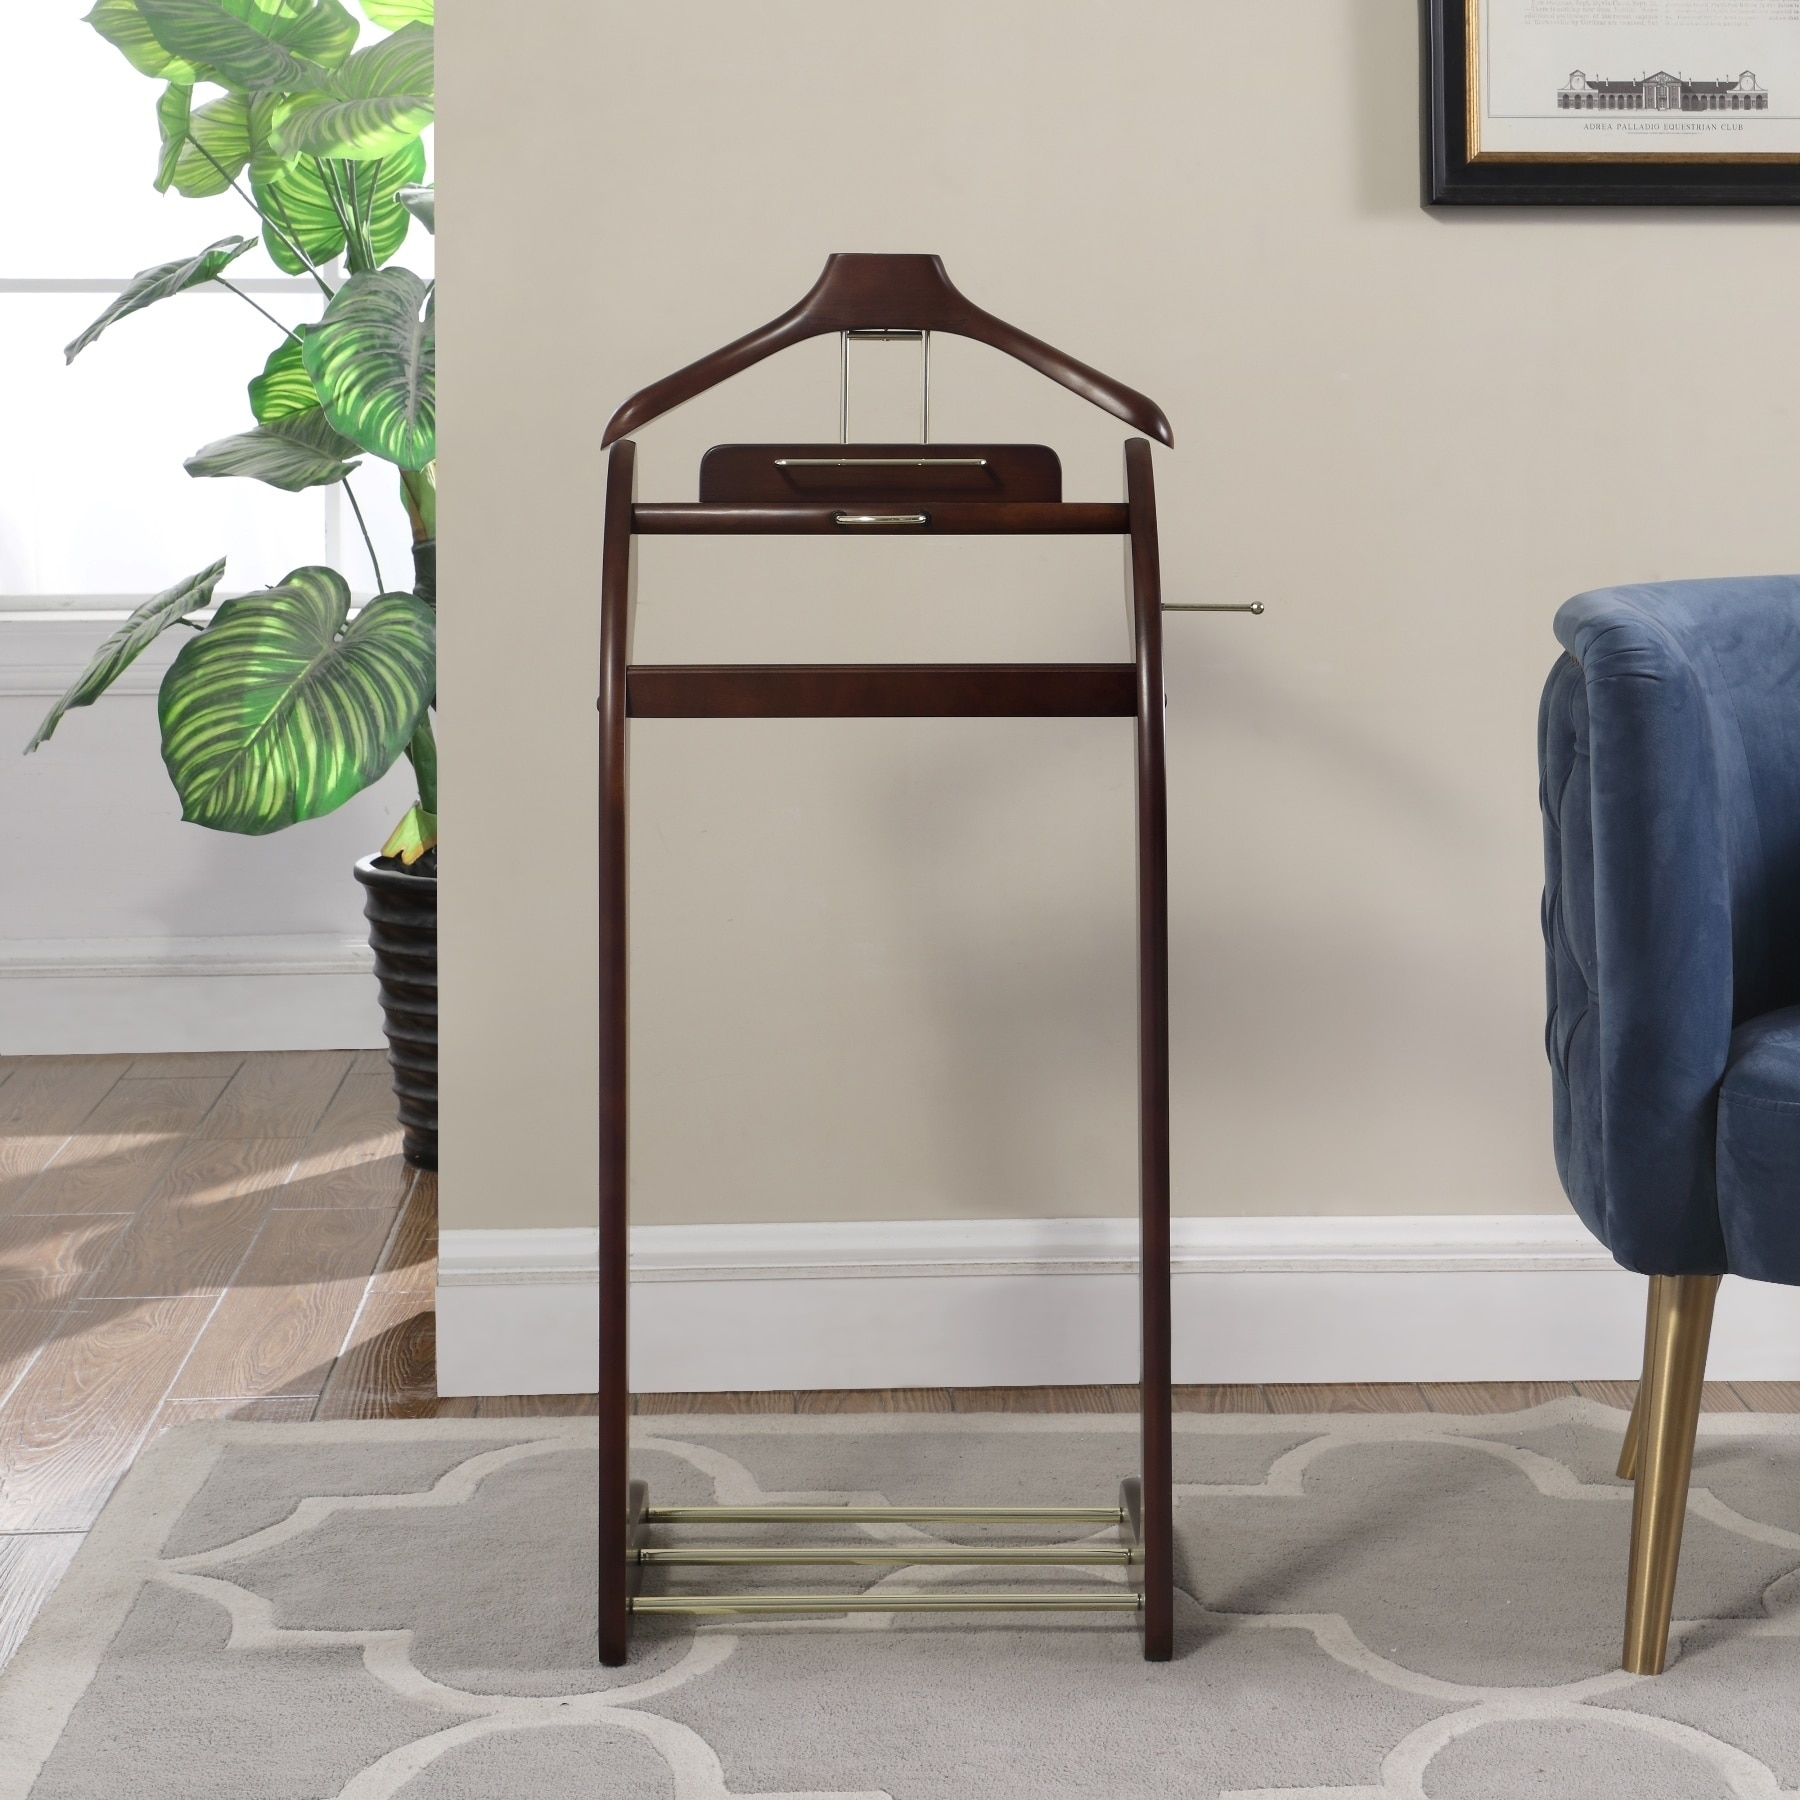 Shop Menu0027s Suit Brown Wood Valet Stand   Free Shipping Today    Overstock.com   5084748